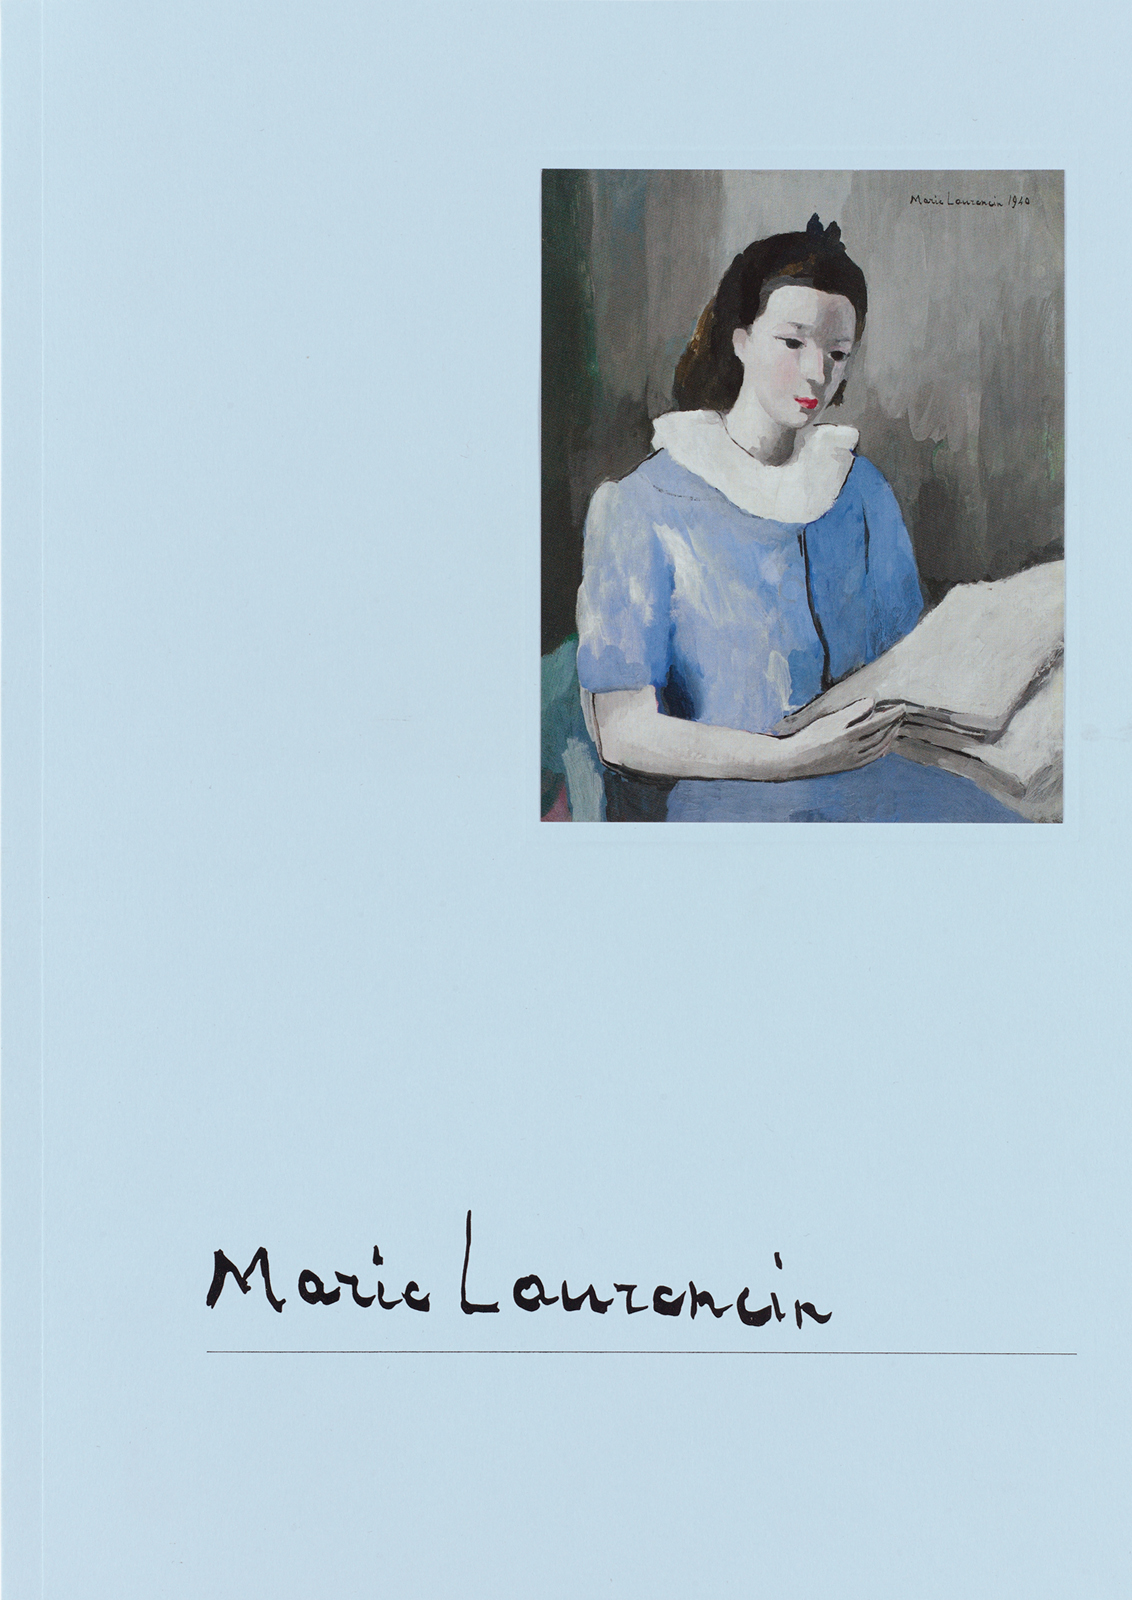 Marie Laurencin – 2021, 48 pages, fully illustrated in color, Owrps, 29,5 x 21 cm Euro 20,- – This catalogue documents the Marie Laurencin exhibition organized by Jelena Kristic at Galerie Buchholz New York in Spring 2020. Alongside numerous illustrations of the exhibited works, the book features texts by Hirohisa Takano-Yoshizawa, director of the Musée Marie Laurencin, Tokyo, and the curator Jelena Kristic. The book is designed by Mathias Poledna.